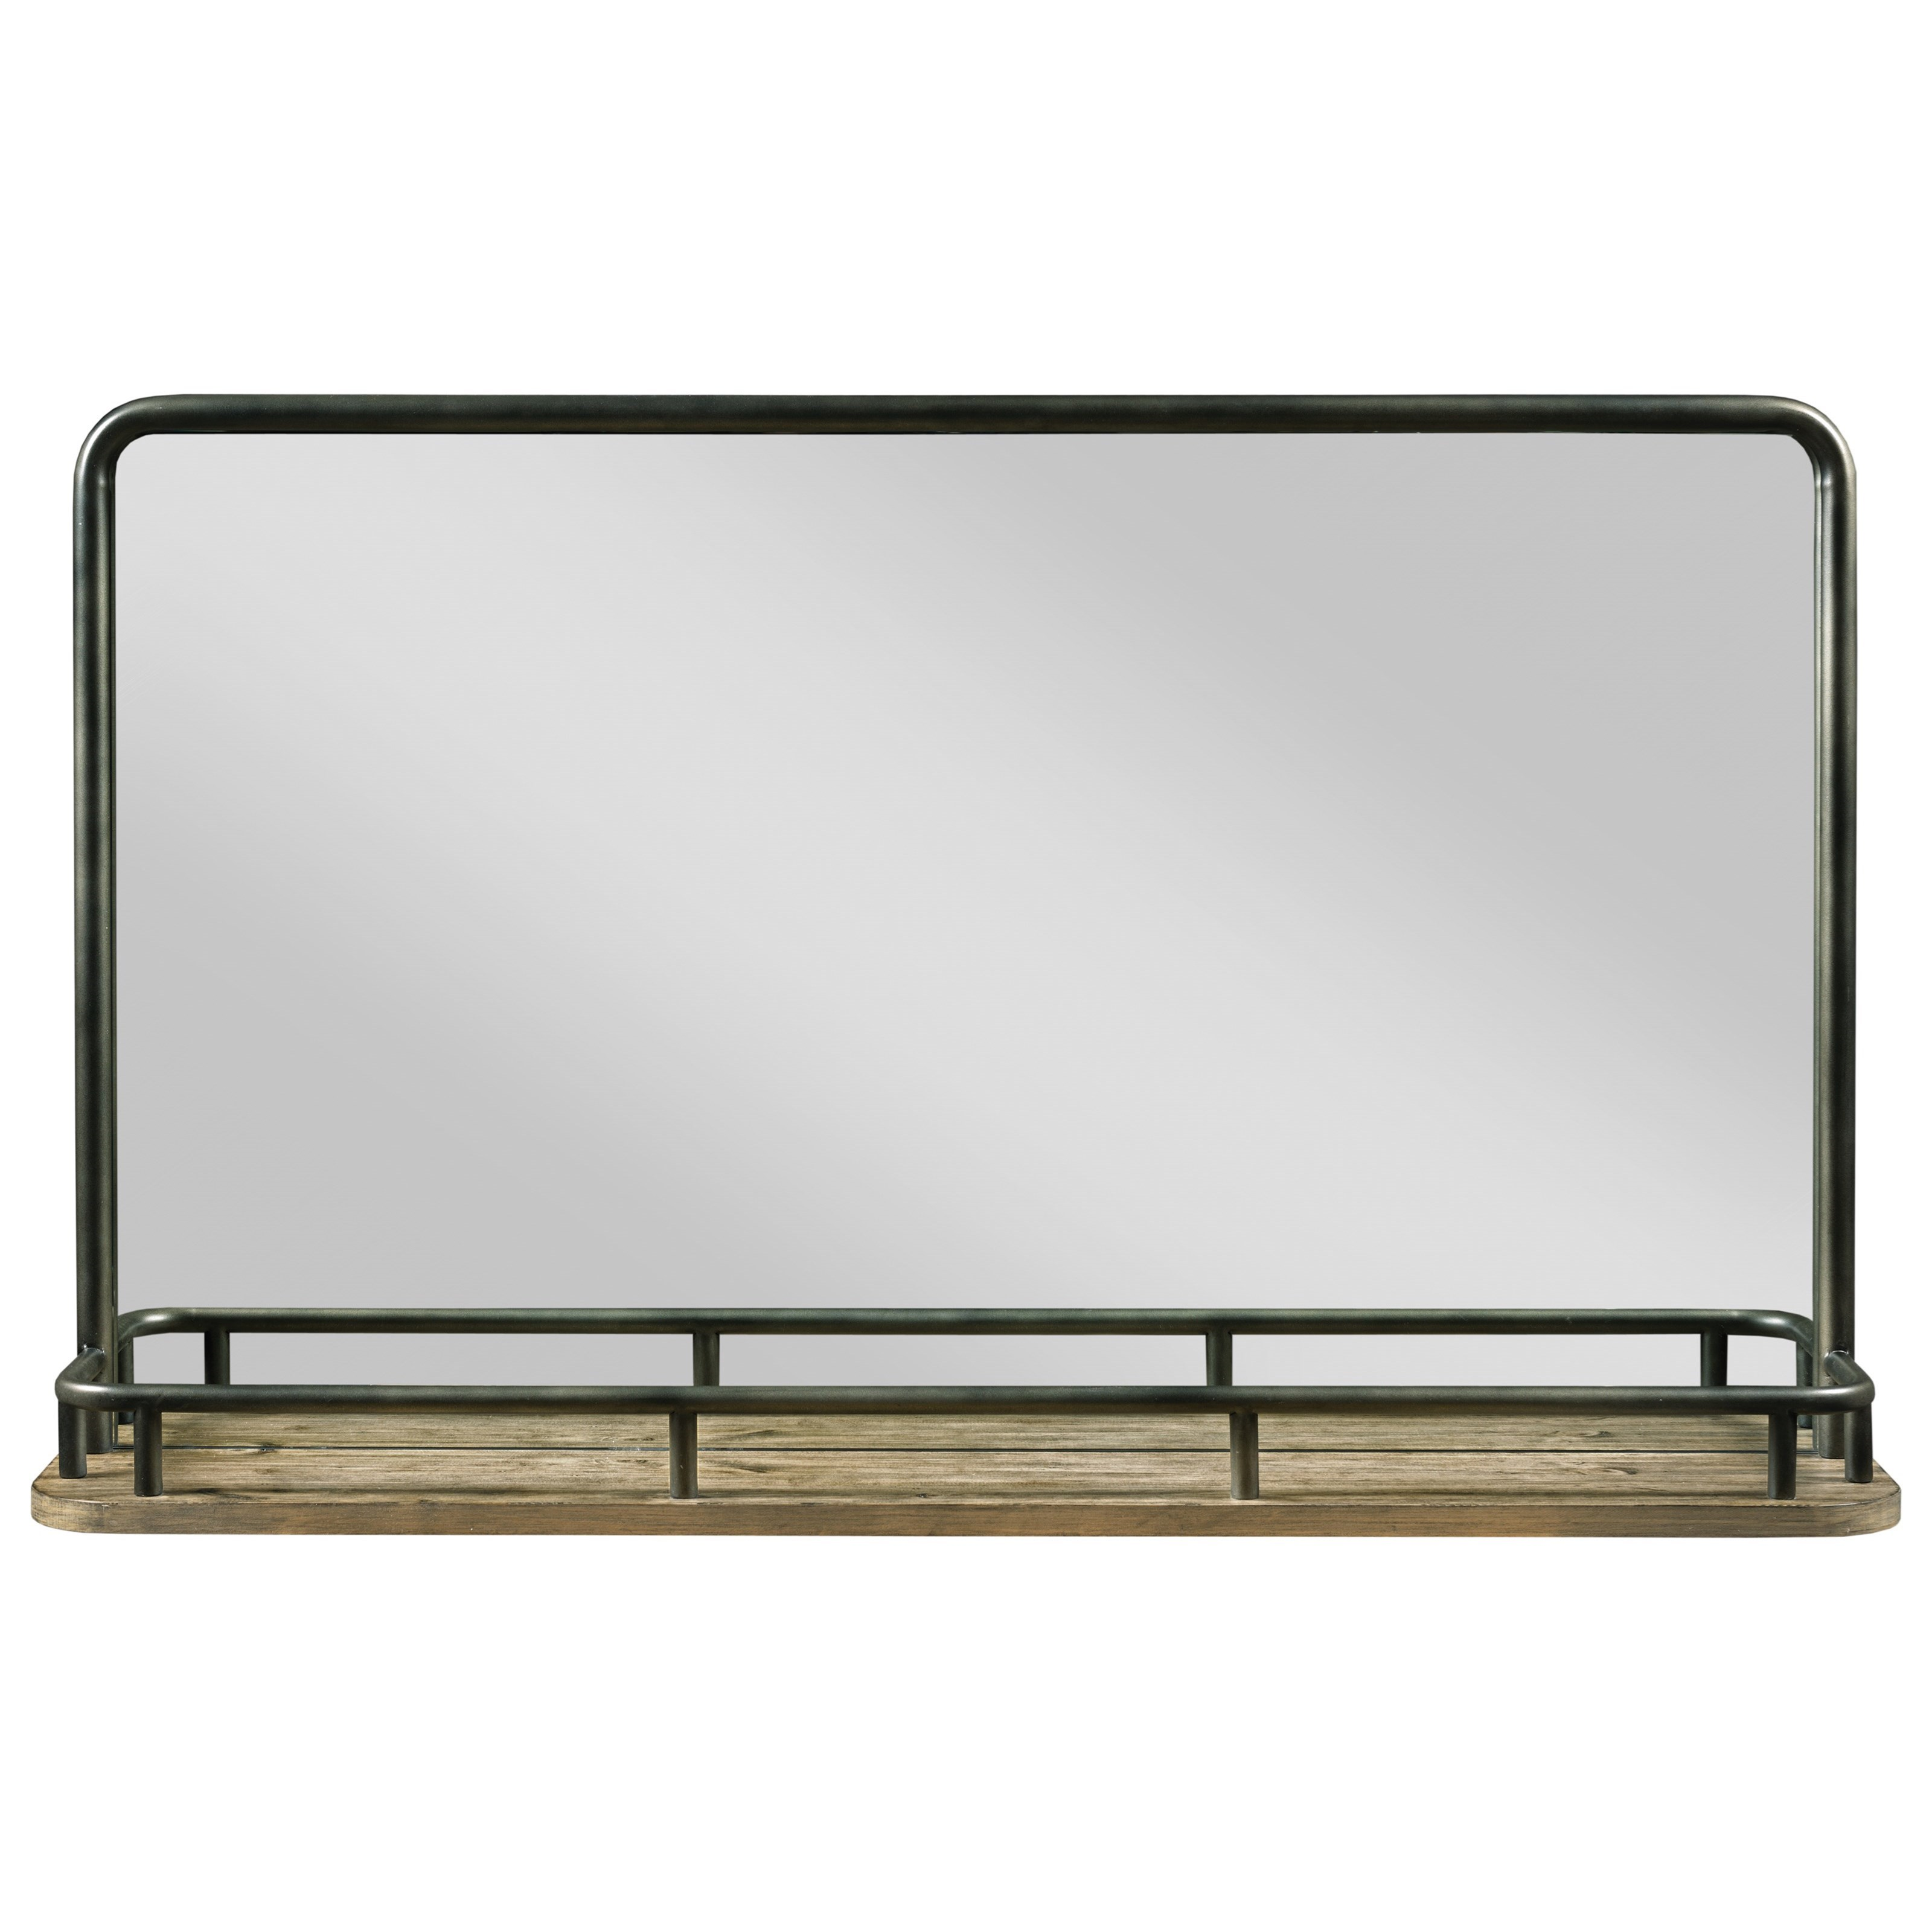 Plank Road Westwood Landscape Mirror                    at Stoney Creek Furniture